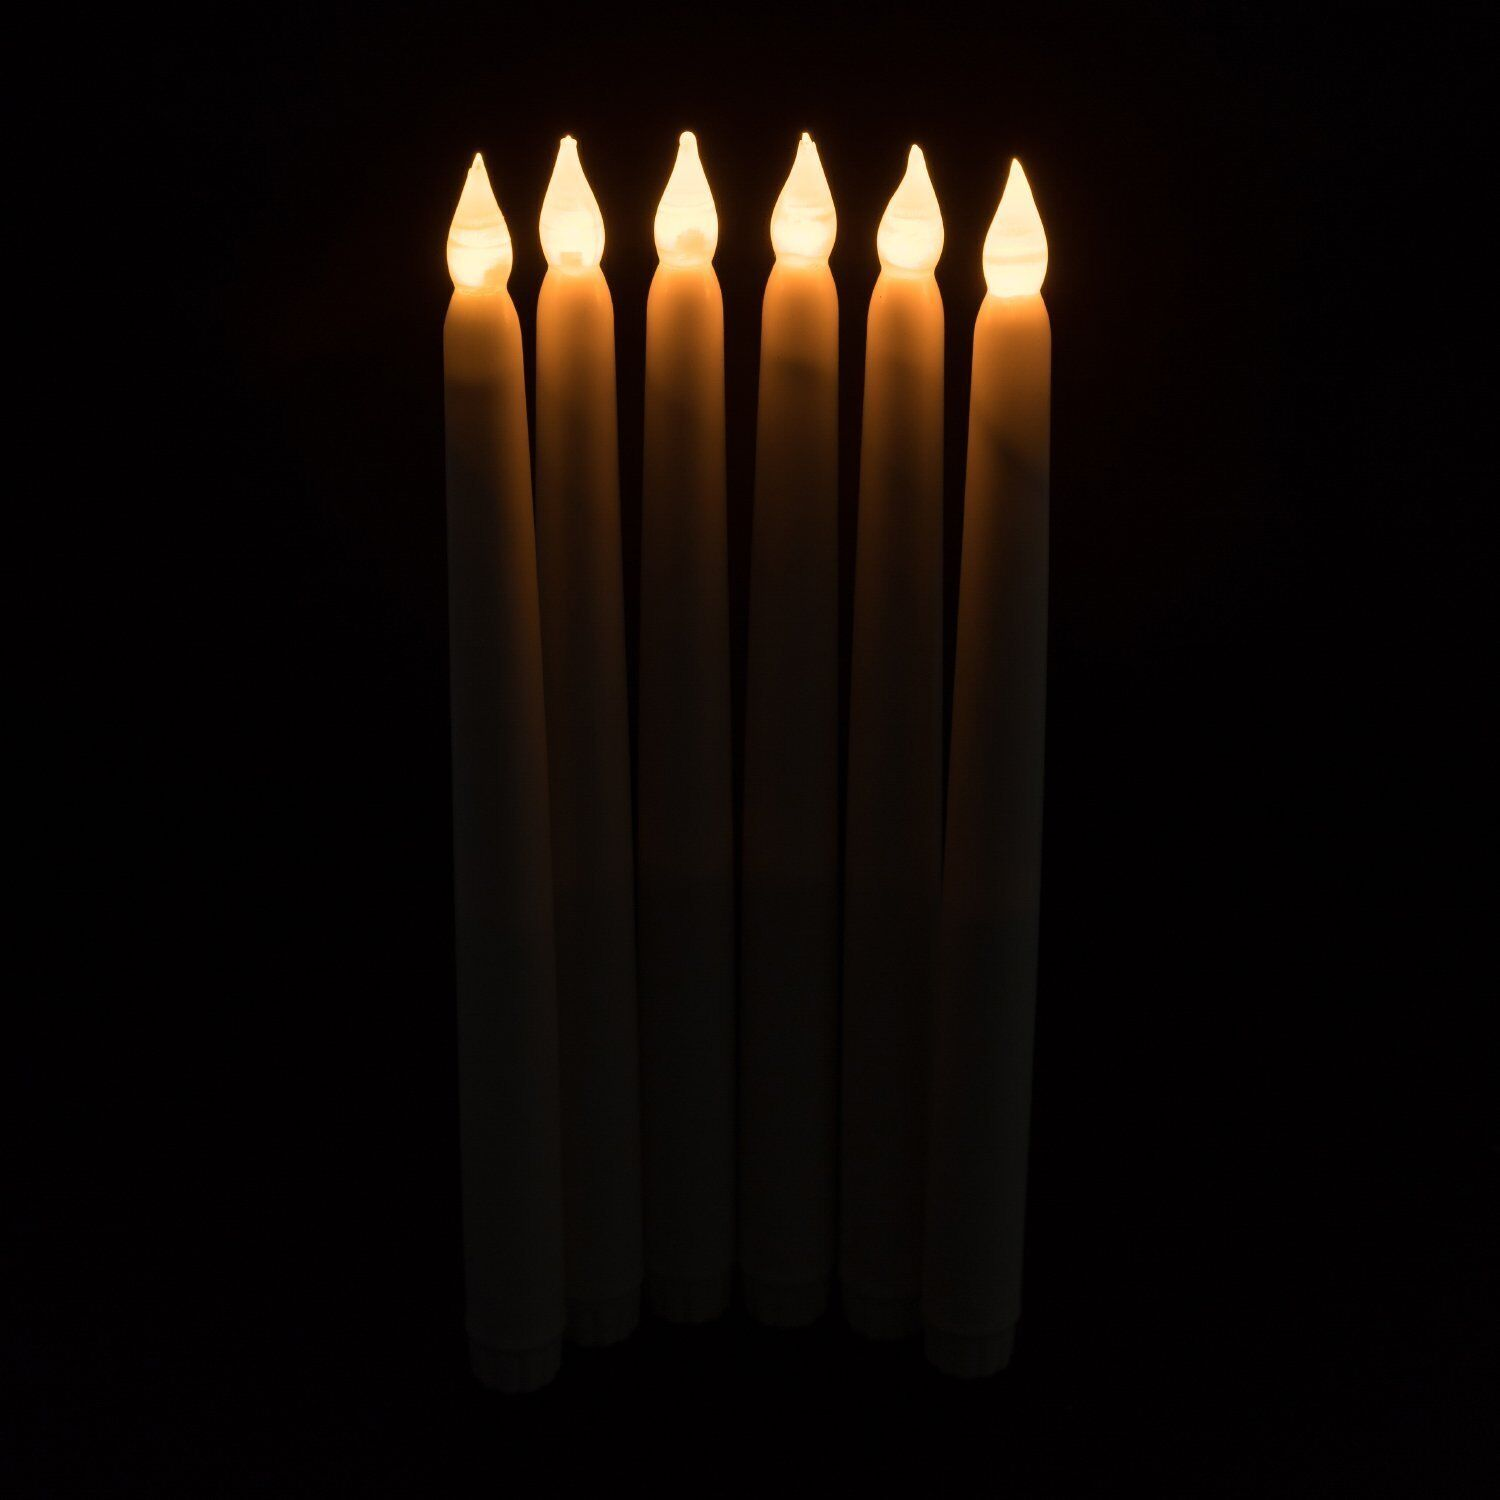 Darice 7 inch Bright LED Taper Candle model#6204-52